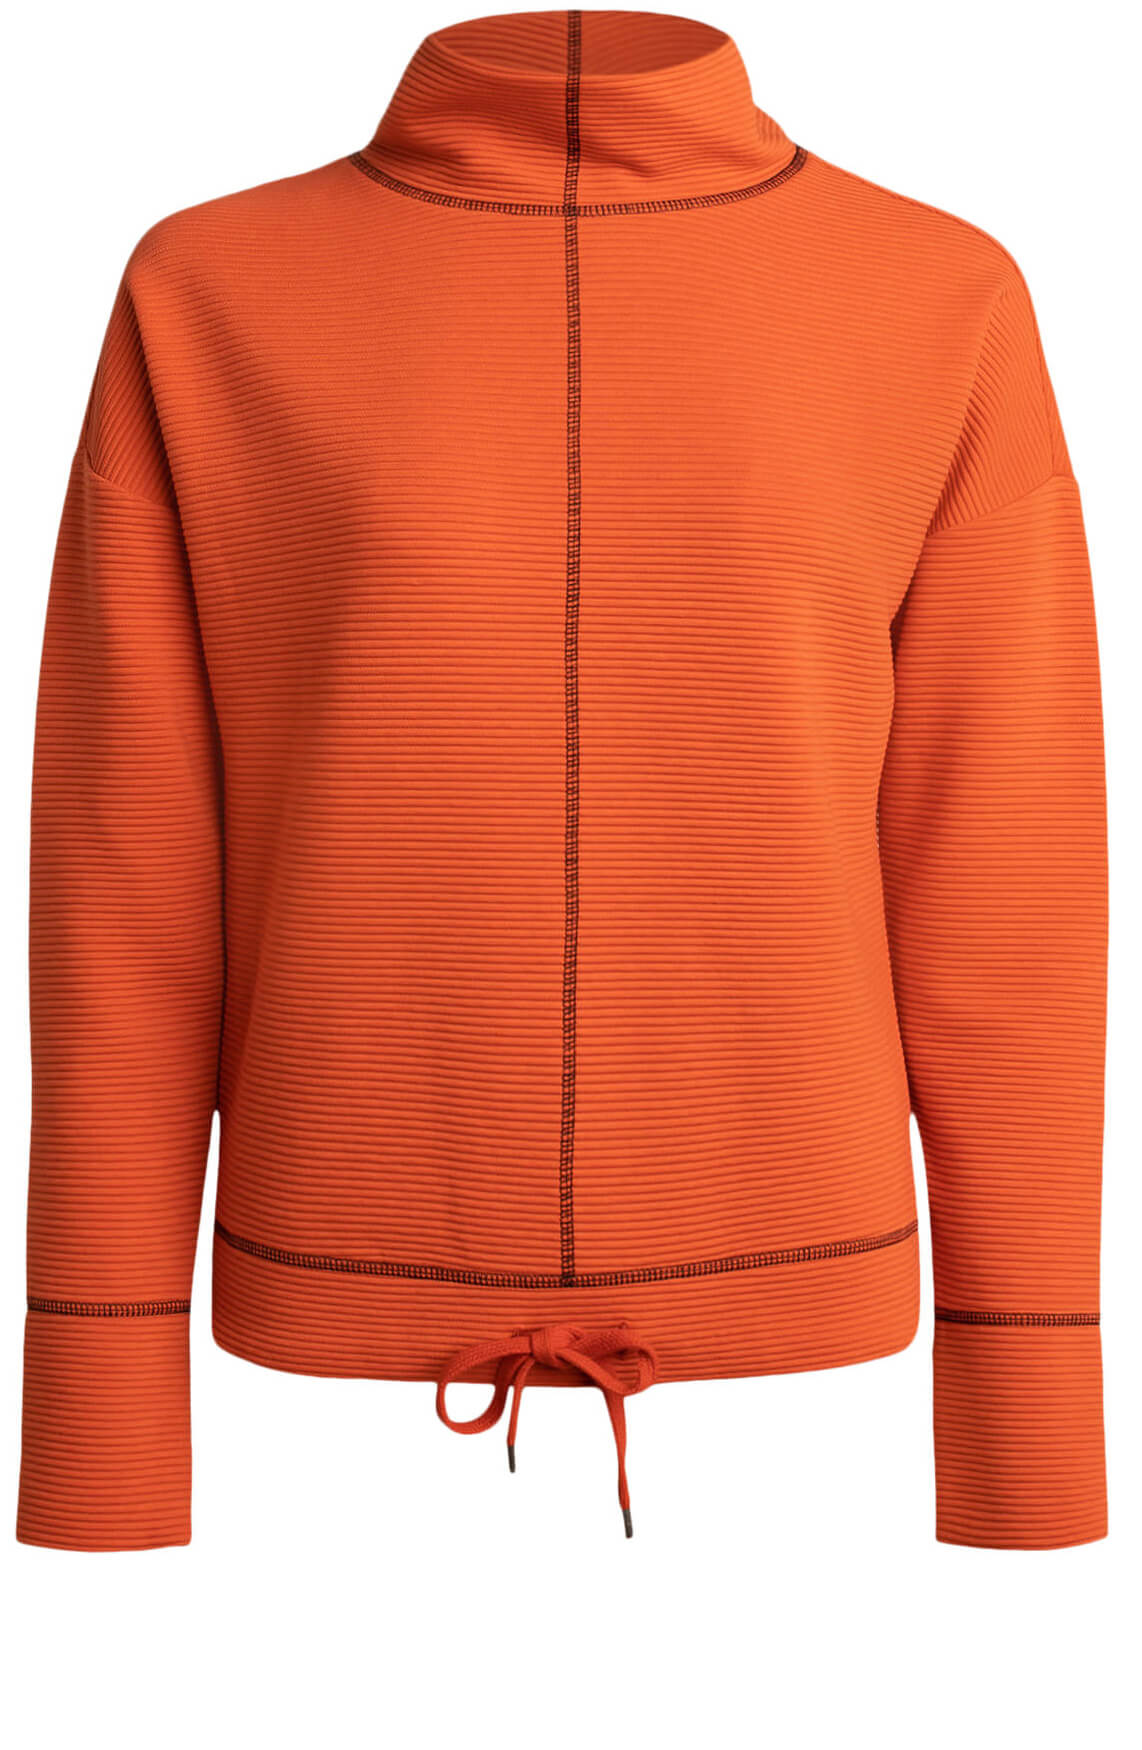 Anna Dames Sweater Oranje